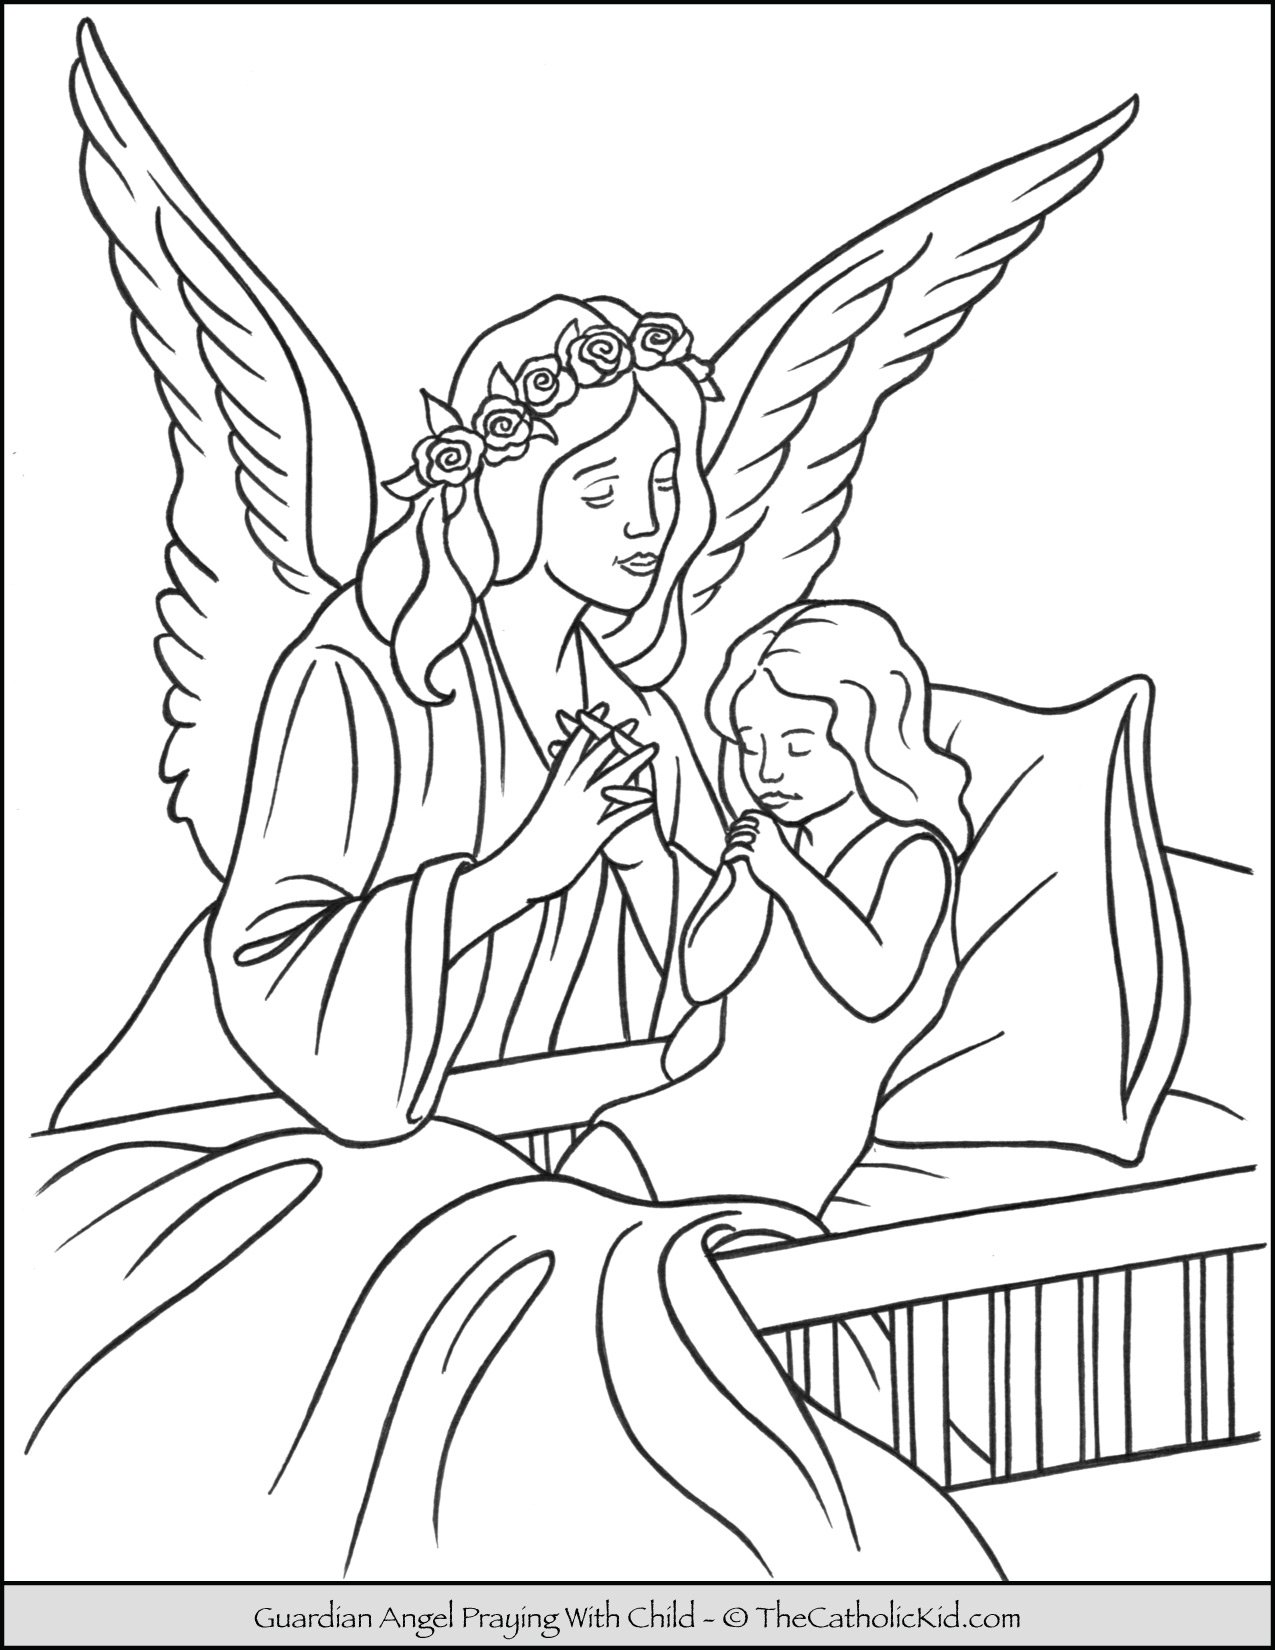 angels archives the catholic kid coloring and games for children guardian angel child coloring pages Guardian Angel Coloring Page